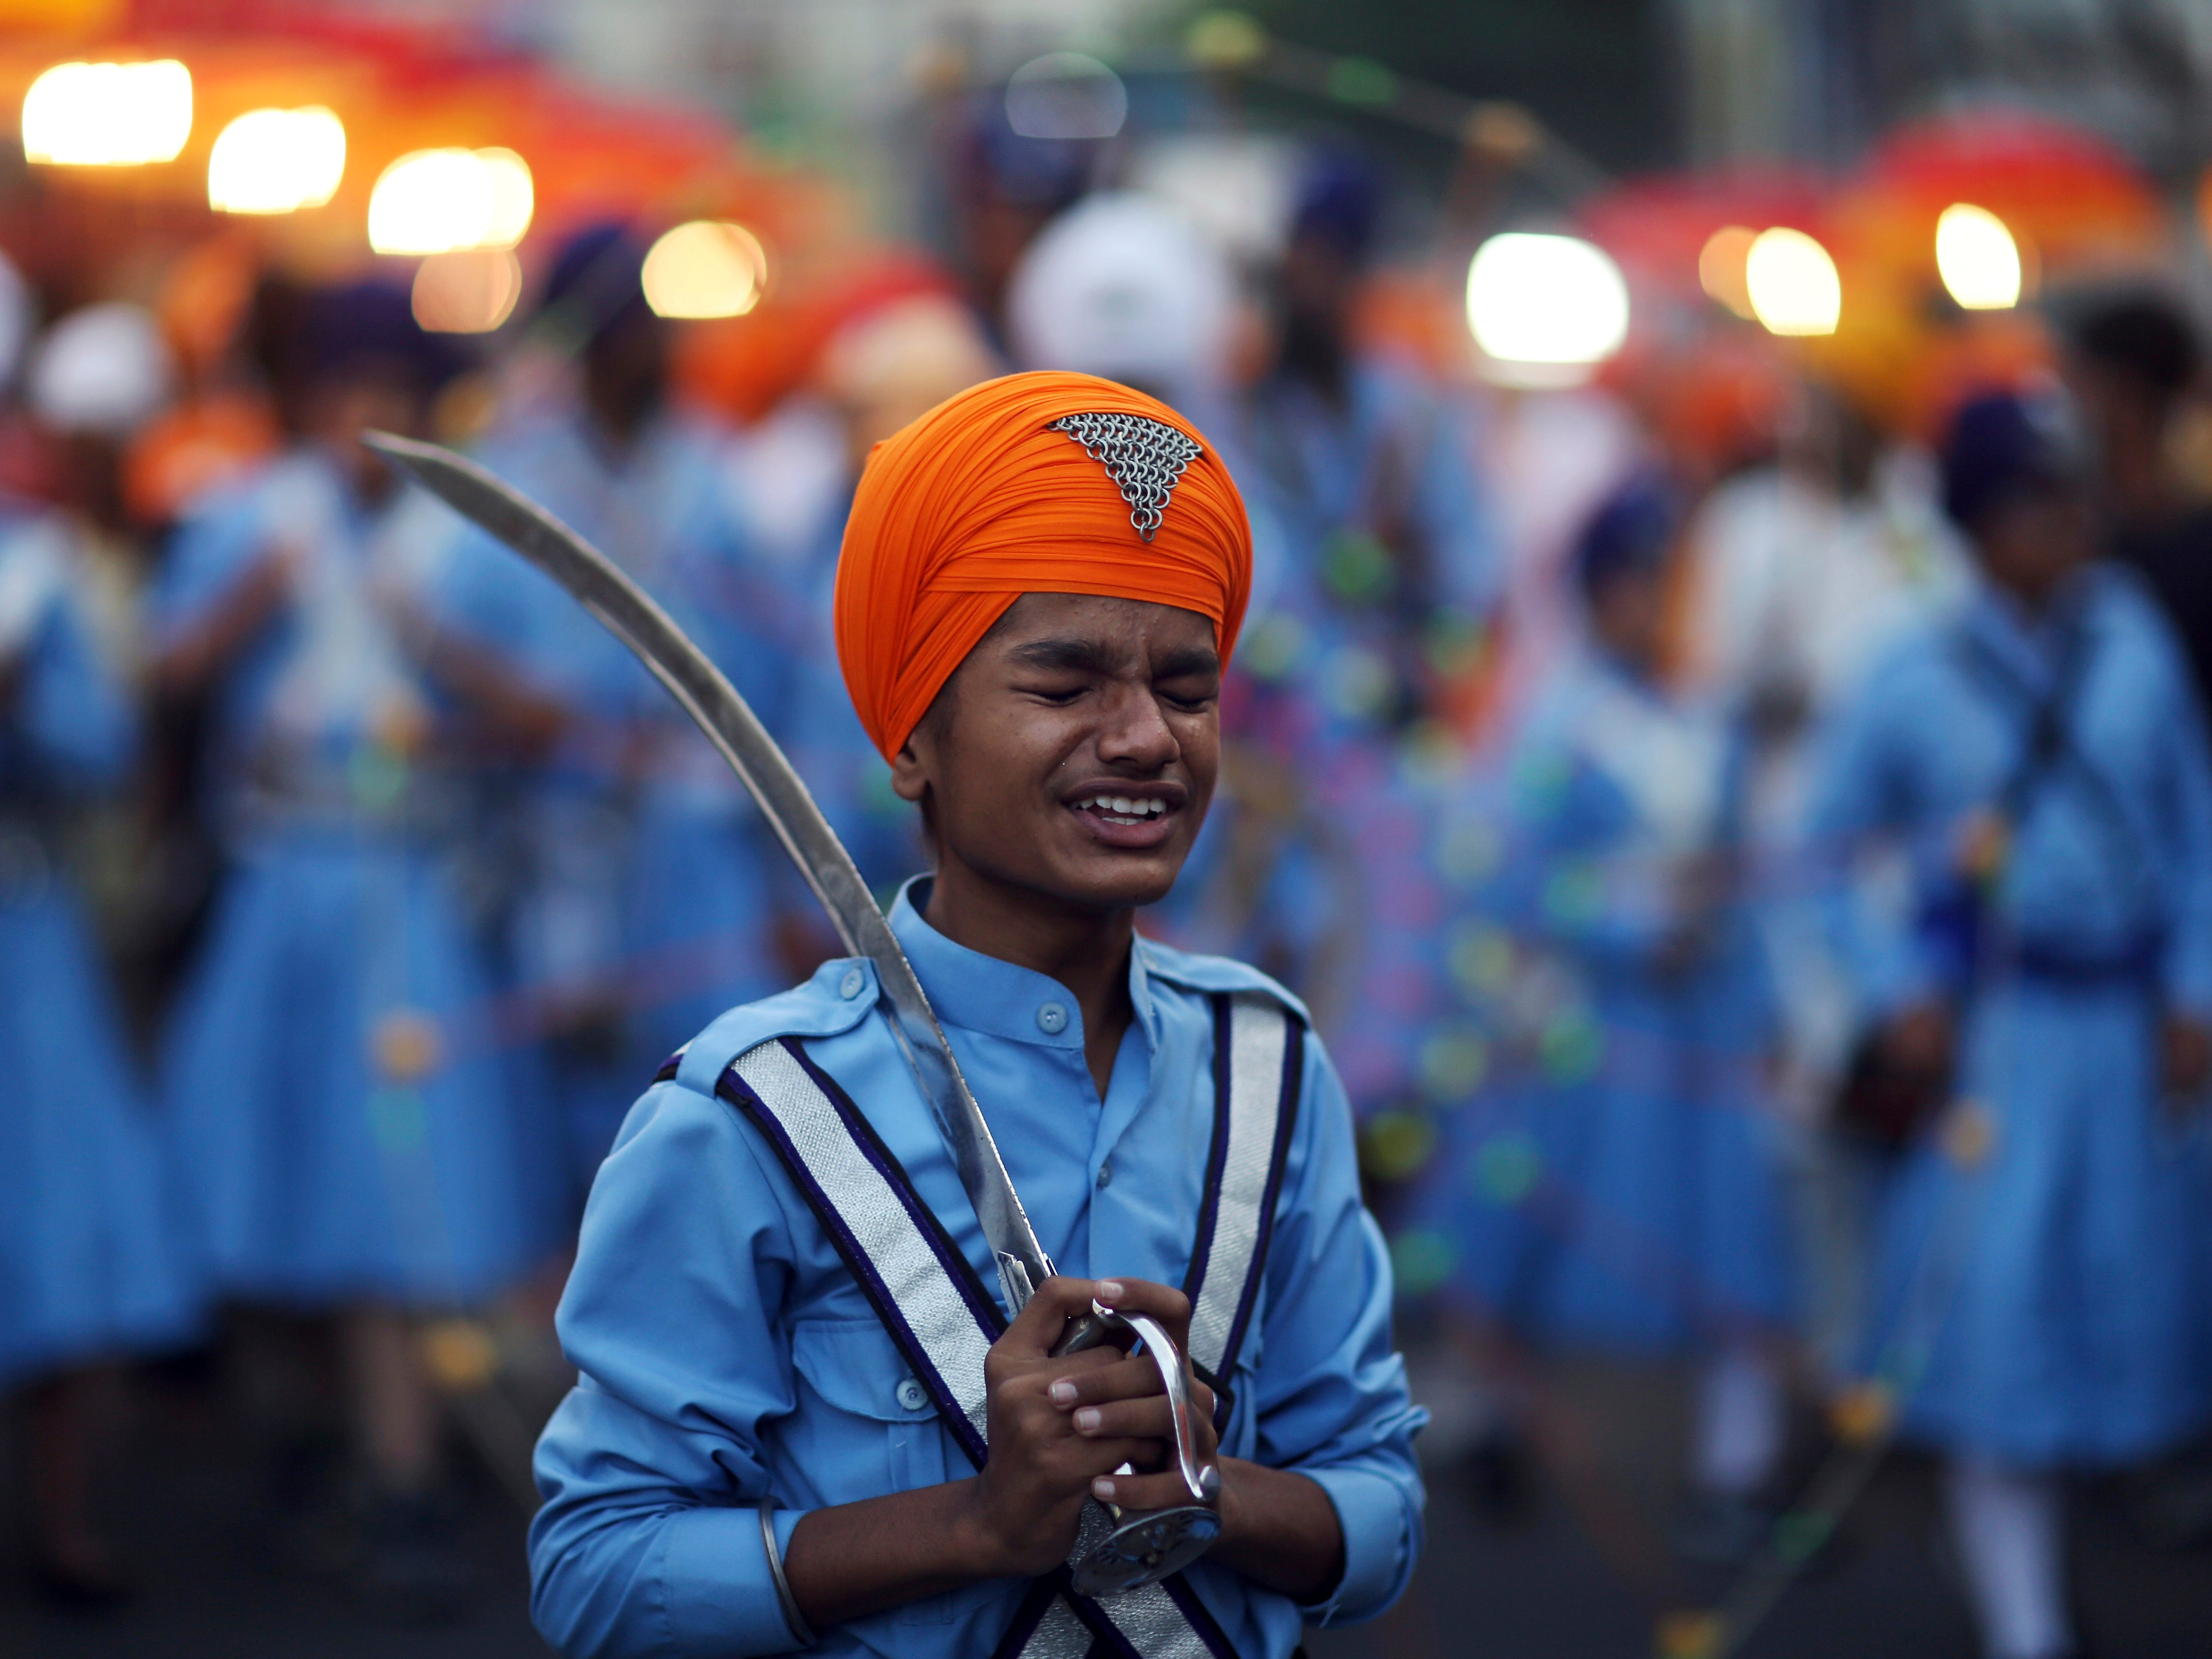 A Sikh boy reacts to a jovial comment from another as he prepares to display his martial art skills during a religious procession ahead of the birth anniversary of the first Sikh guru, Guru Nanak, in Hyderabad, India, Monday, Nov. 19, 2018. The birth anniversary of Guru Nanak will be marked on Nov. 23.